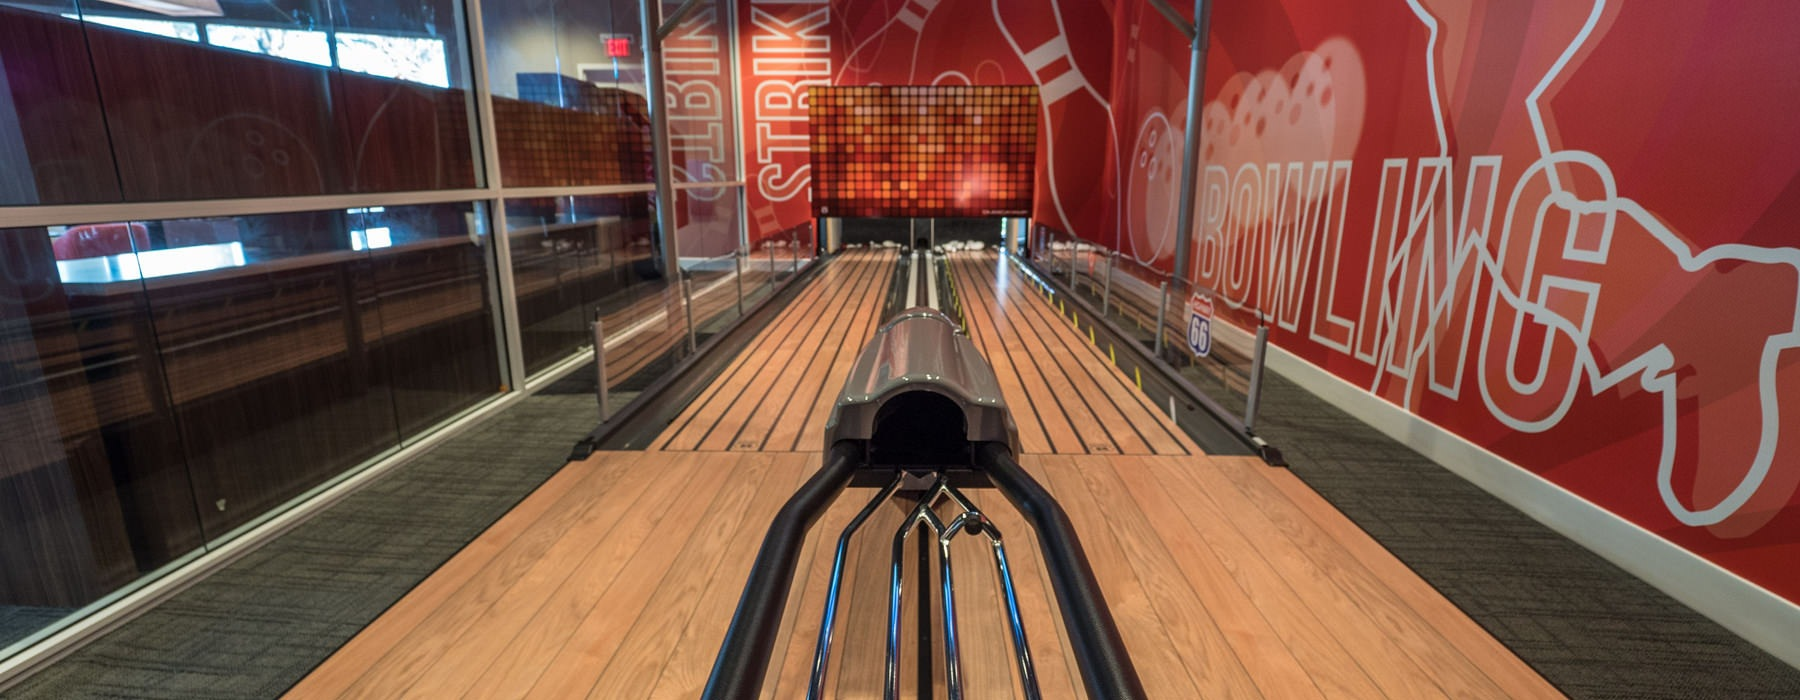 indoor bowling alley in well lit room